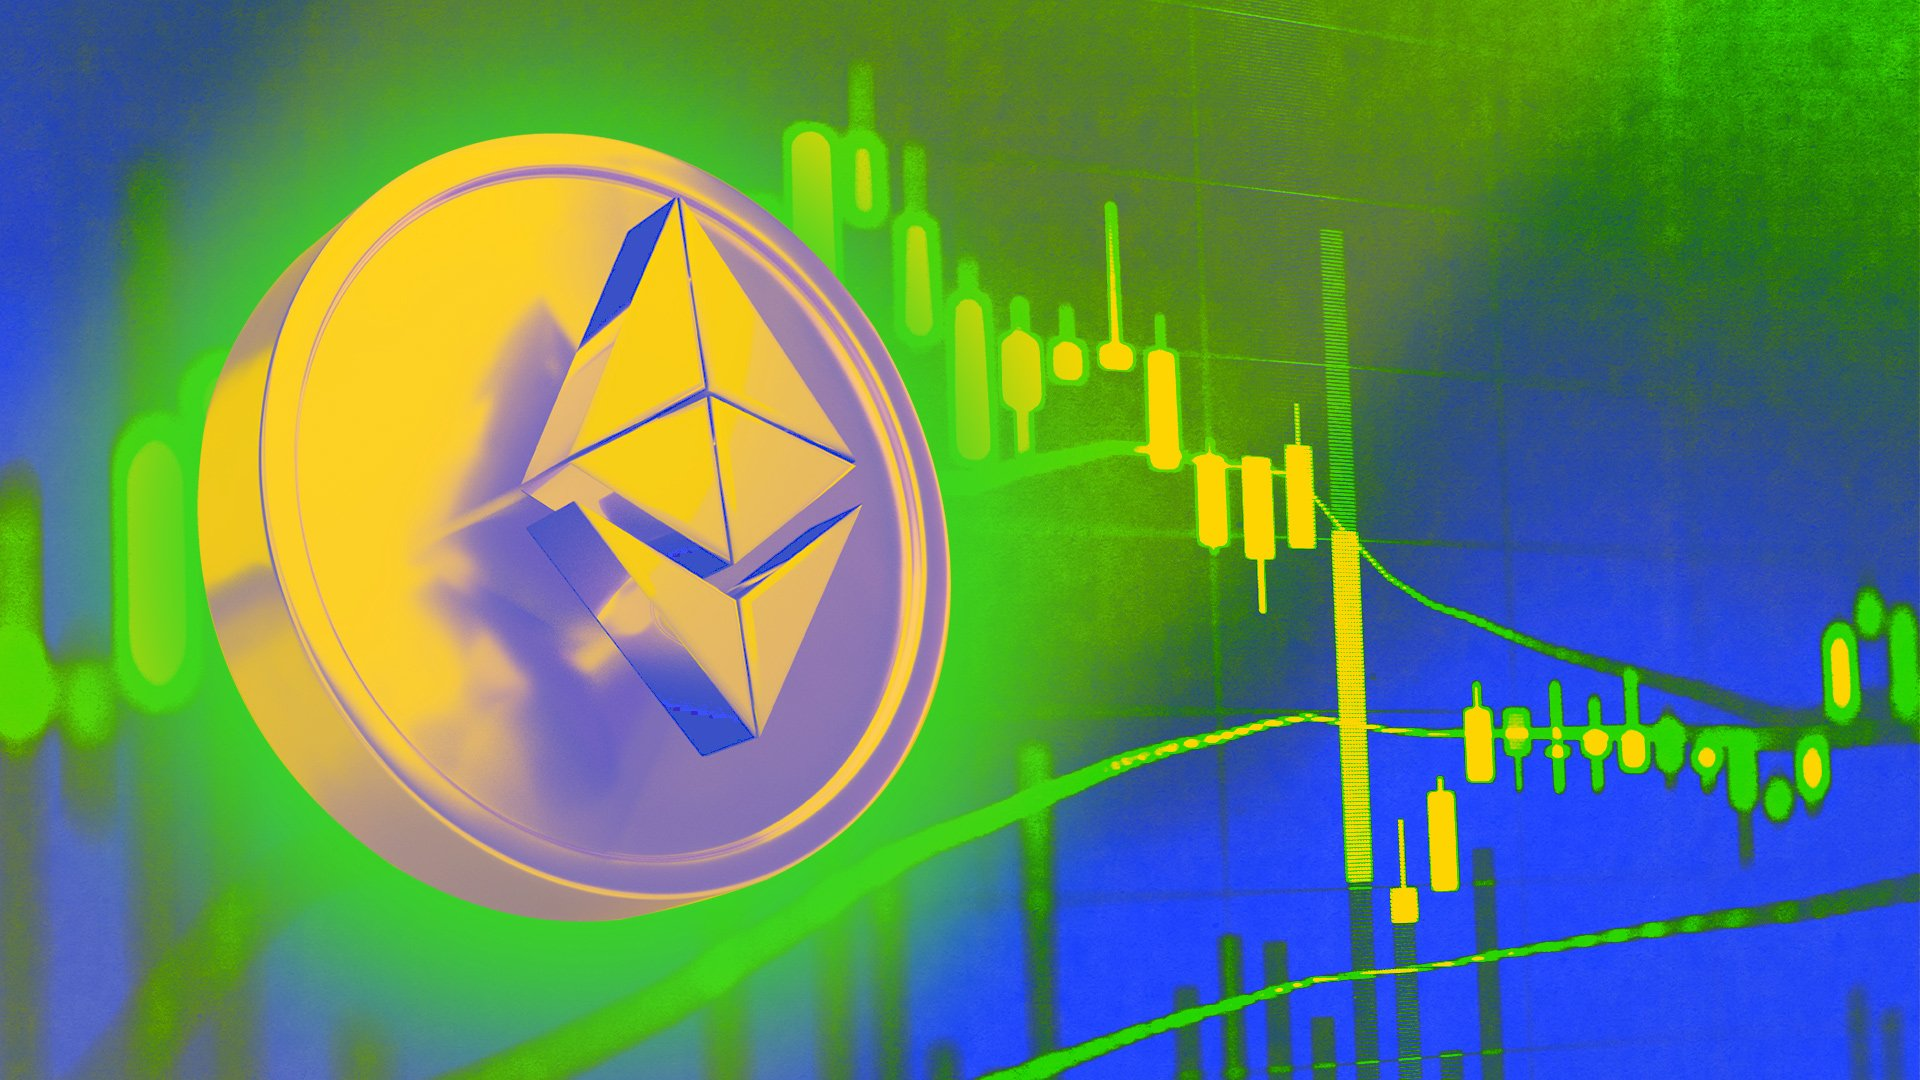 The Ethereum mining pool shuts down